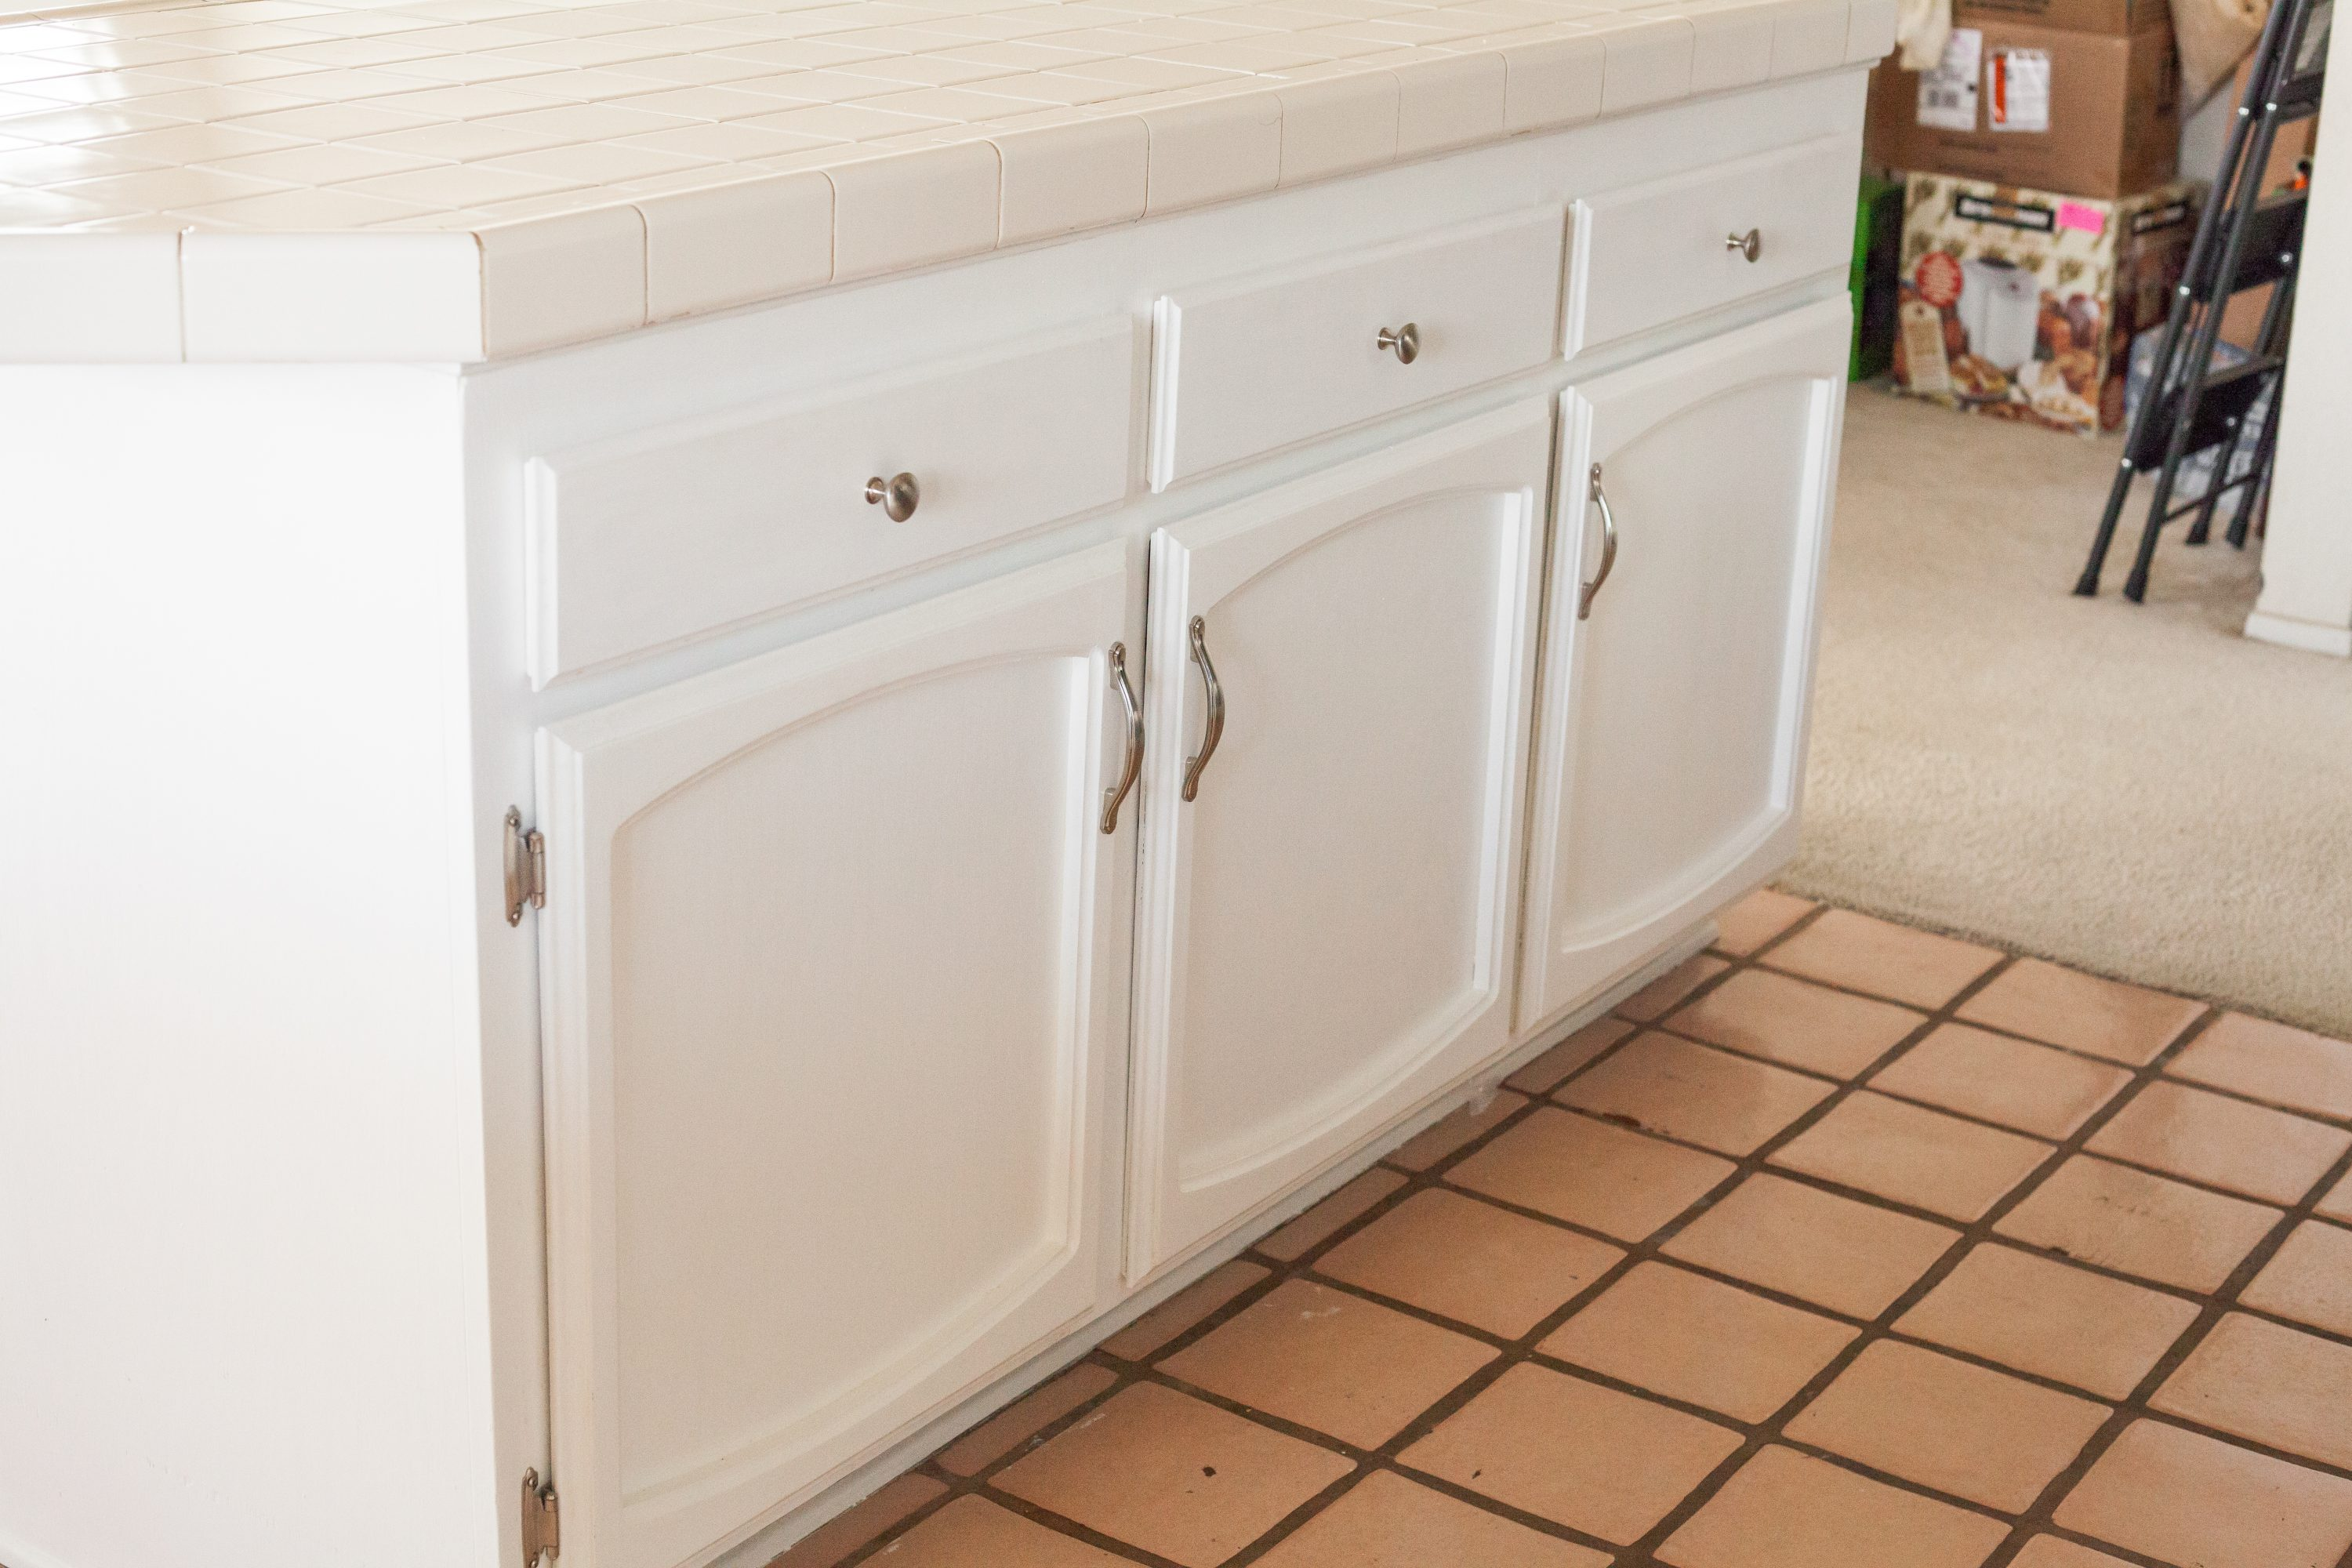 After image of kitchen island cabinets painted with white milk paint